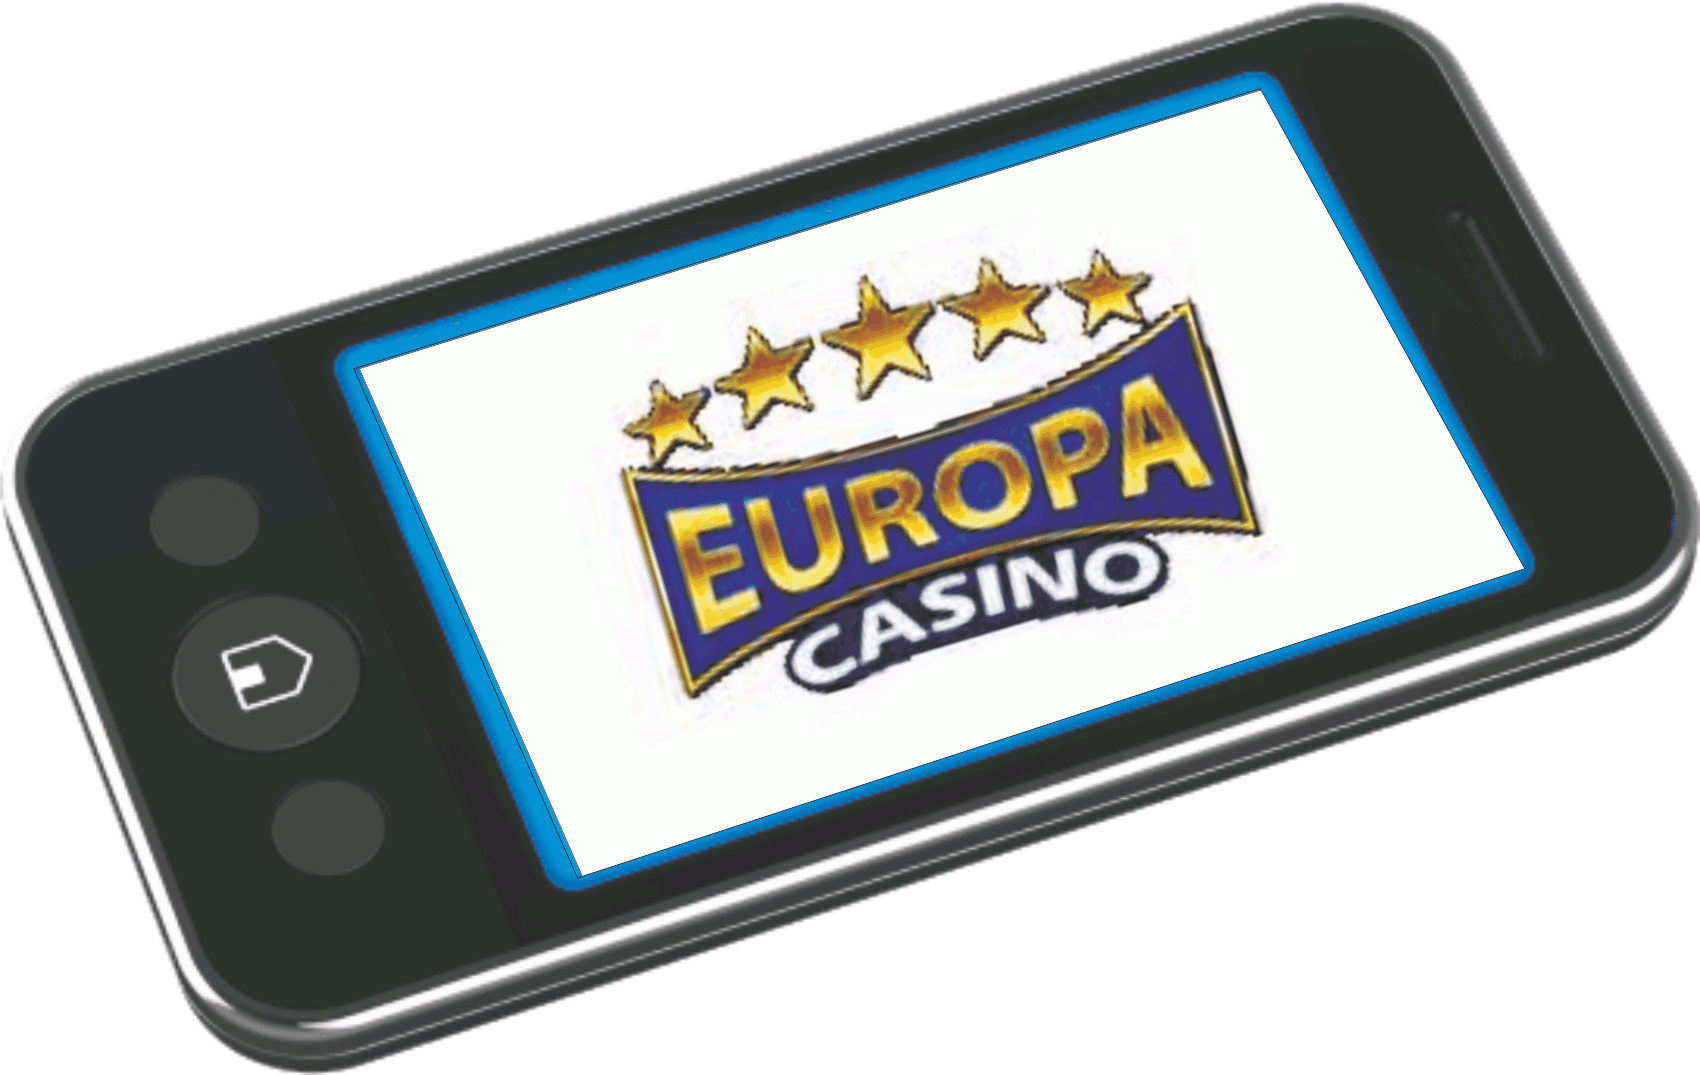 Mobile Devices Supported at Europa Casino